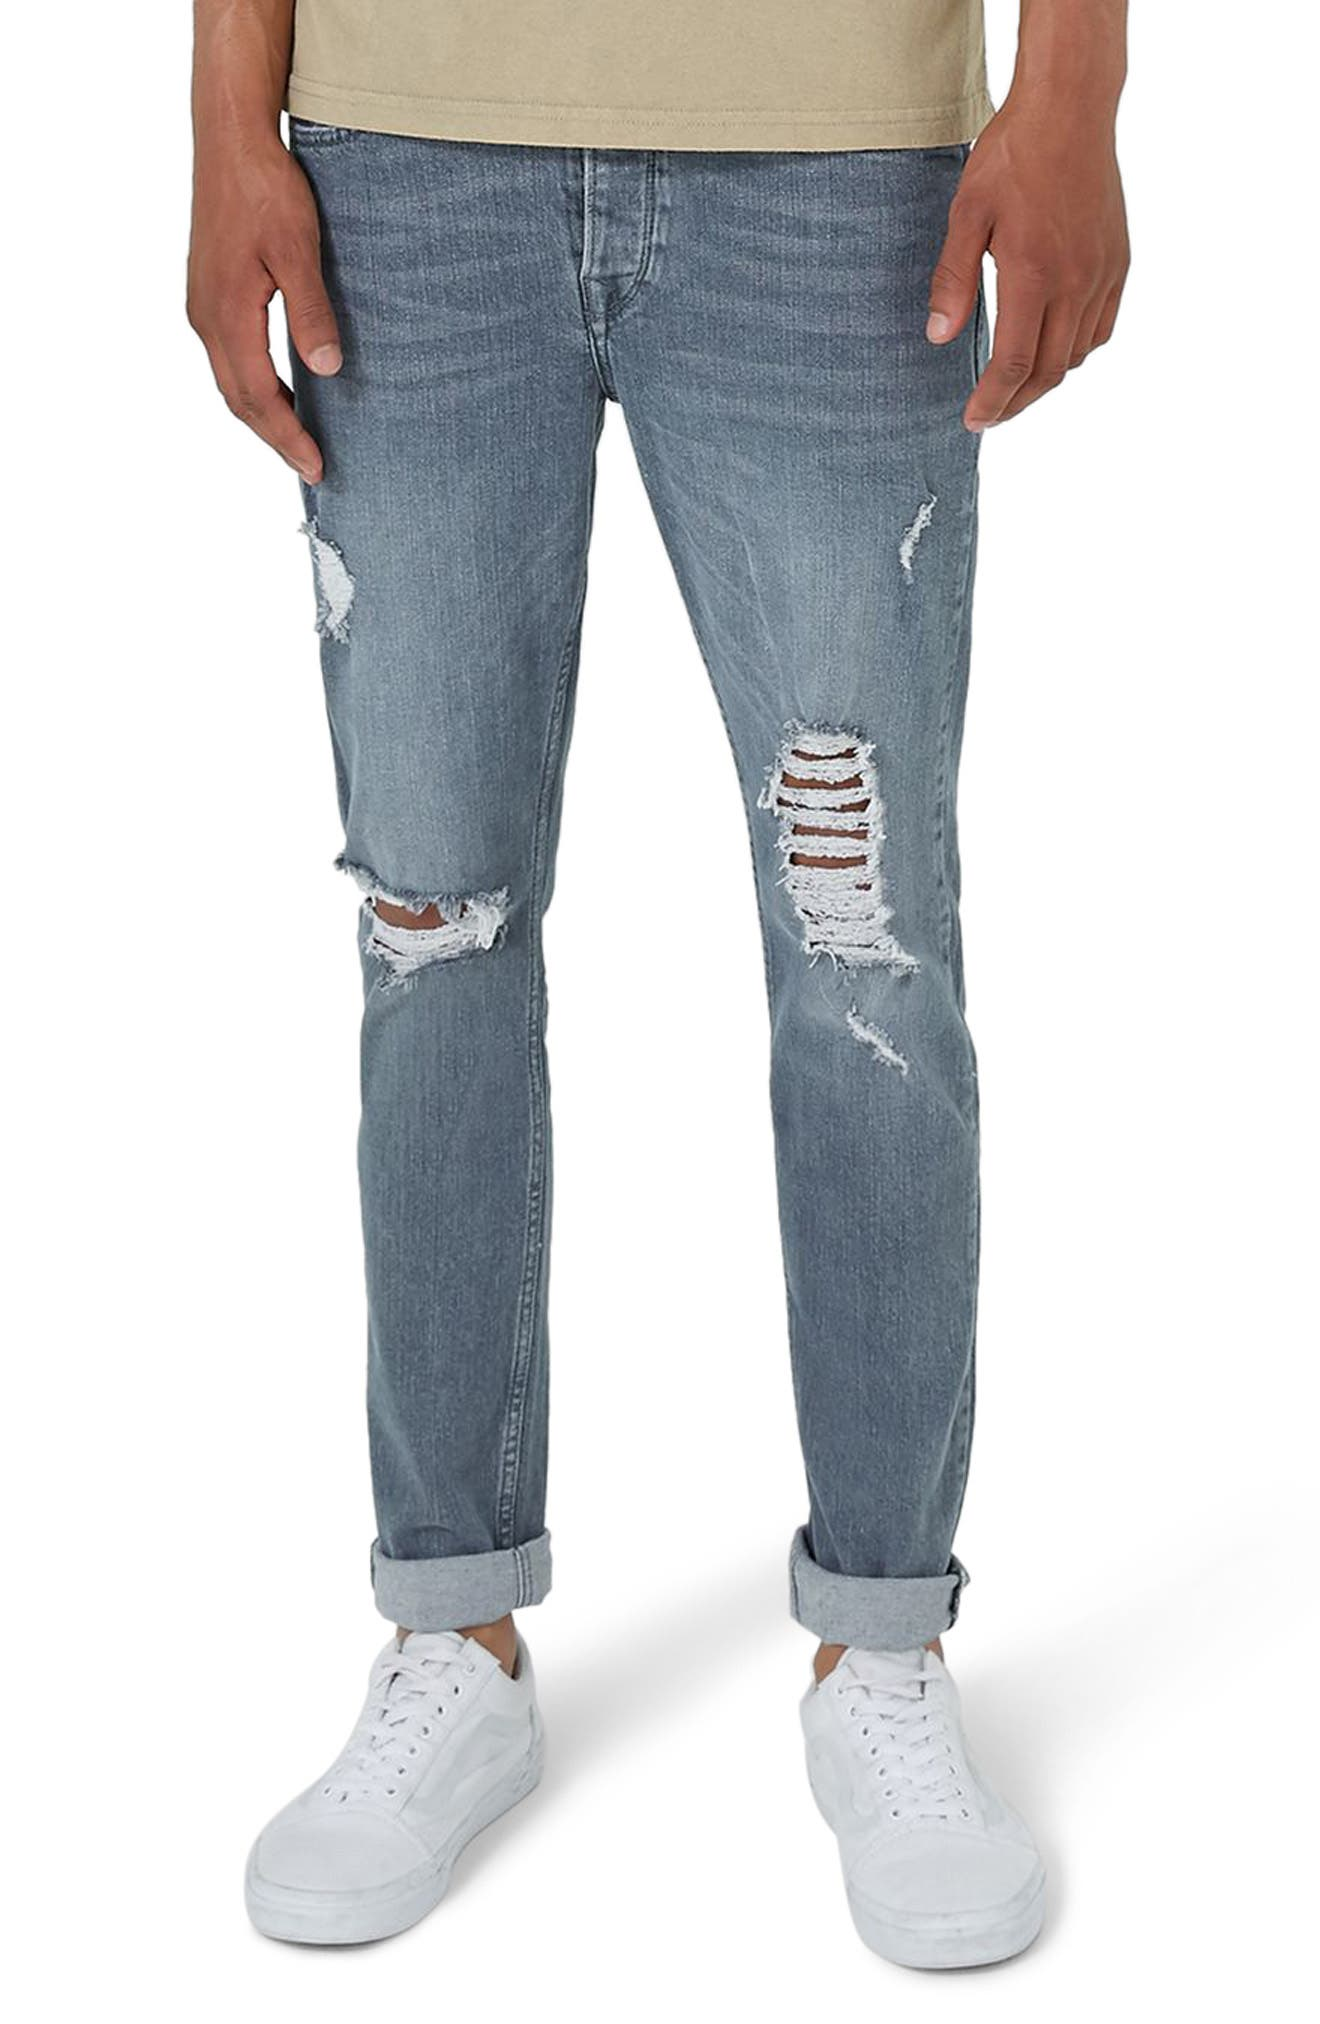 Alternate Image 1 Selected - Topman Extreme Rip Stretch Jeans